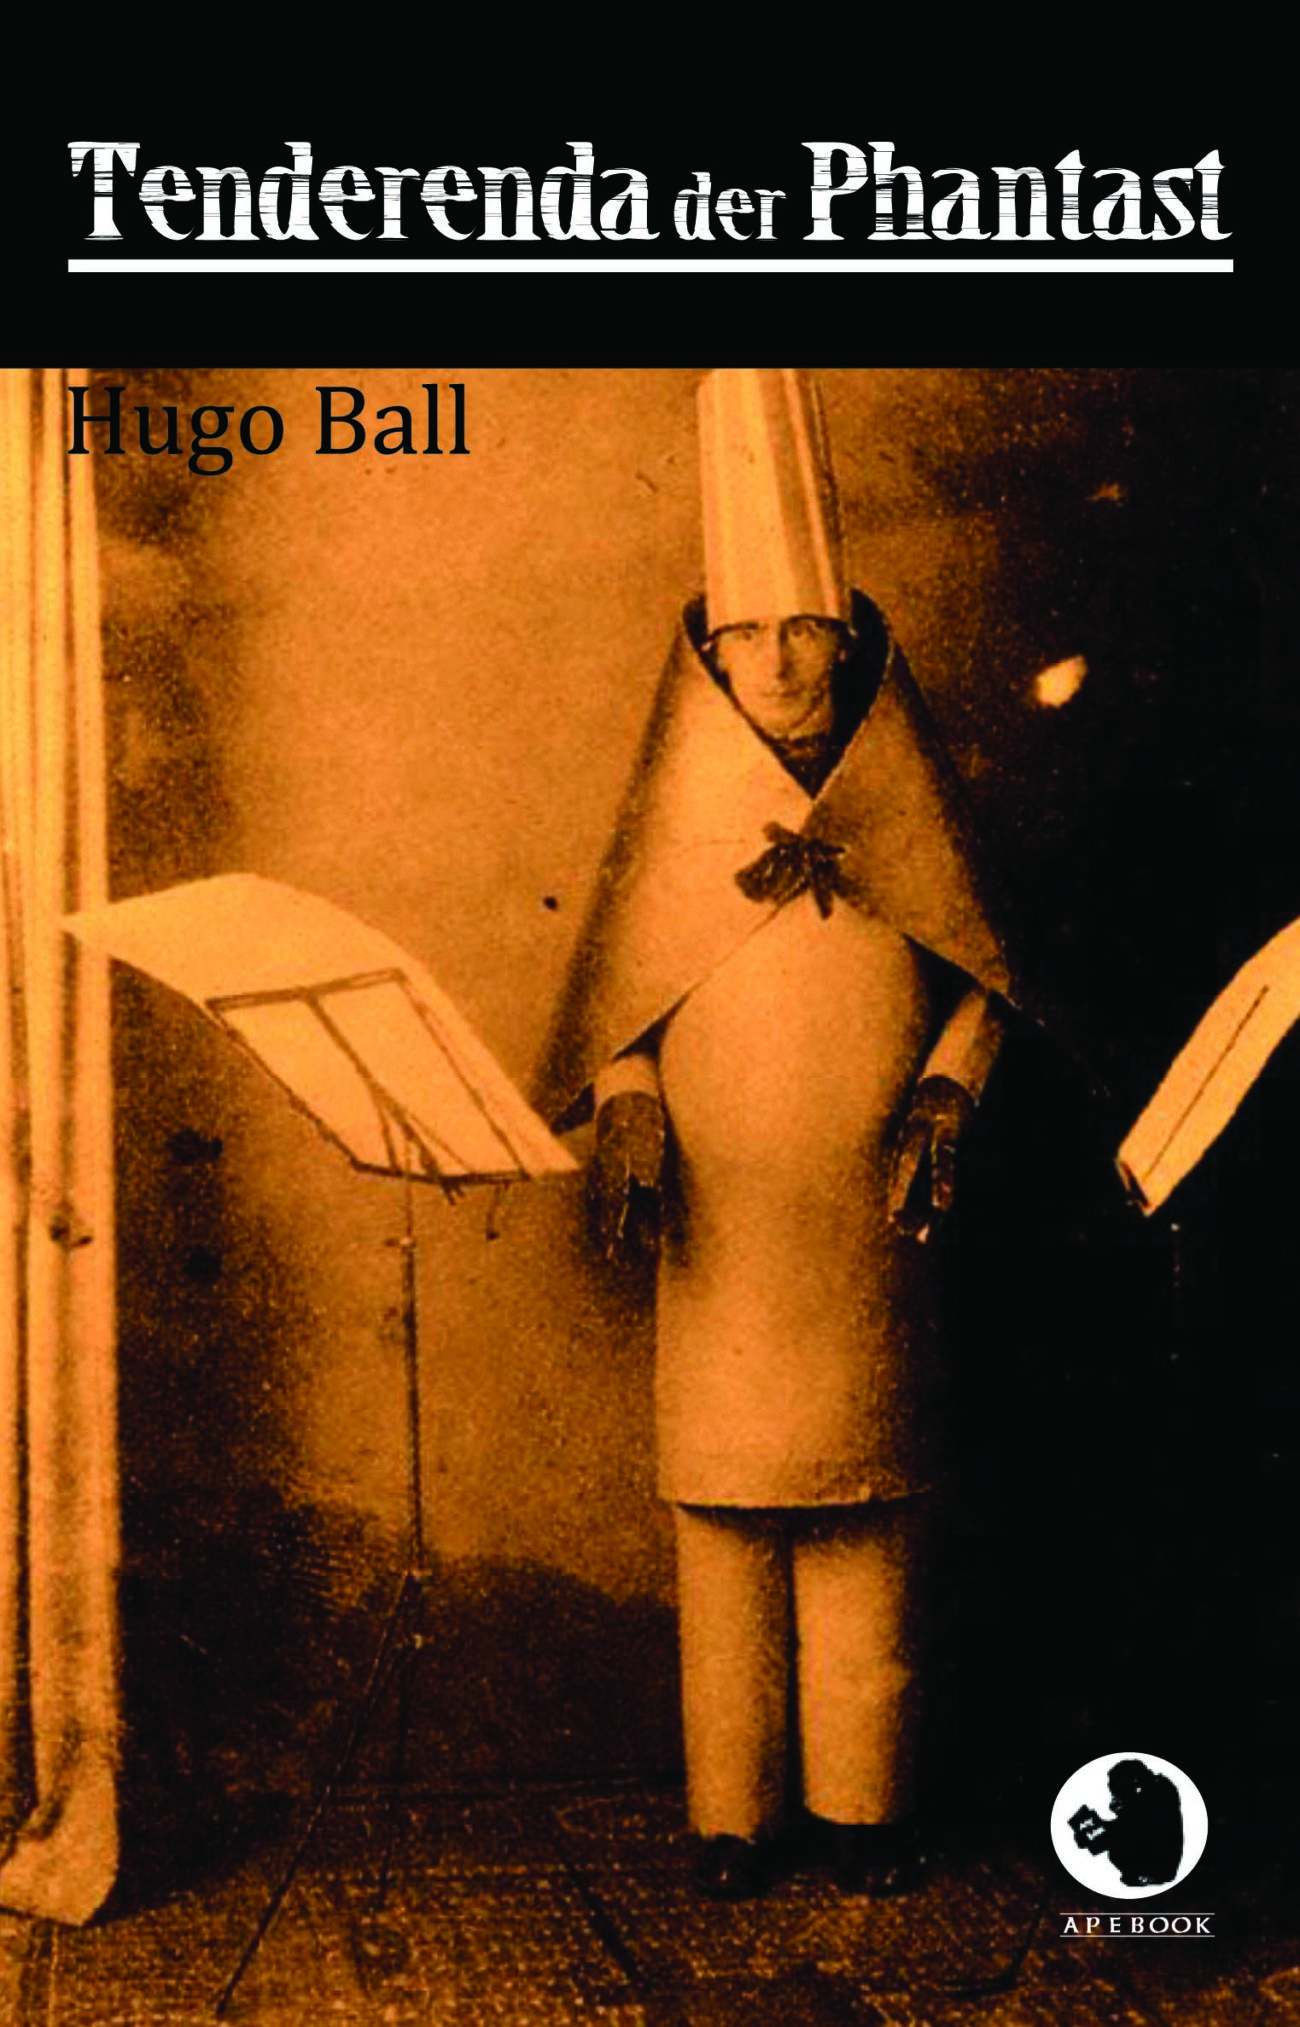 Hugo Ball: Tenderenda der Phantast